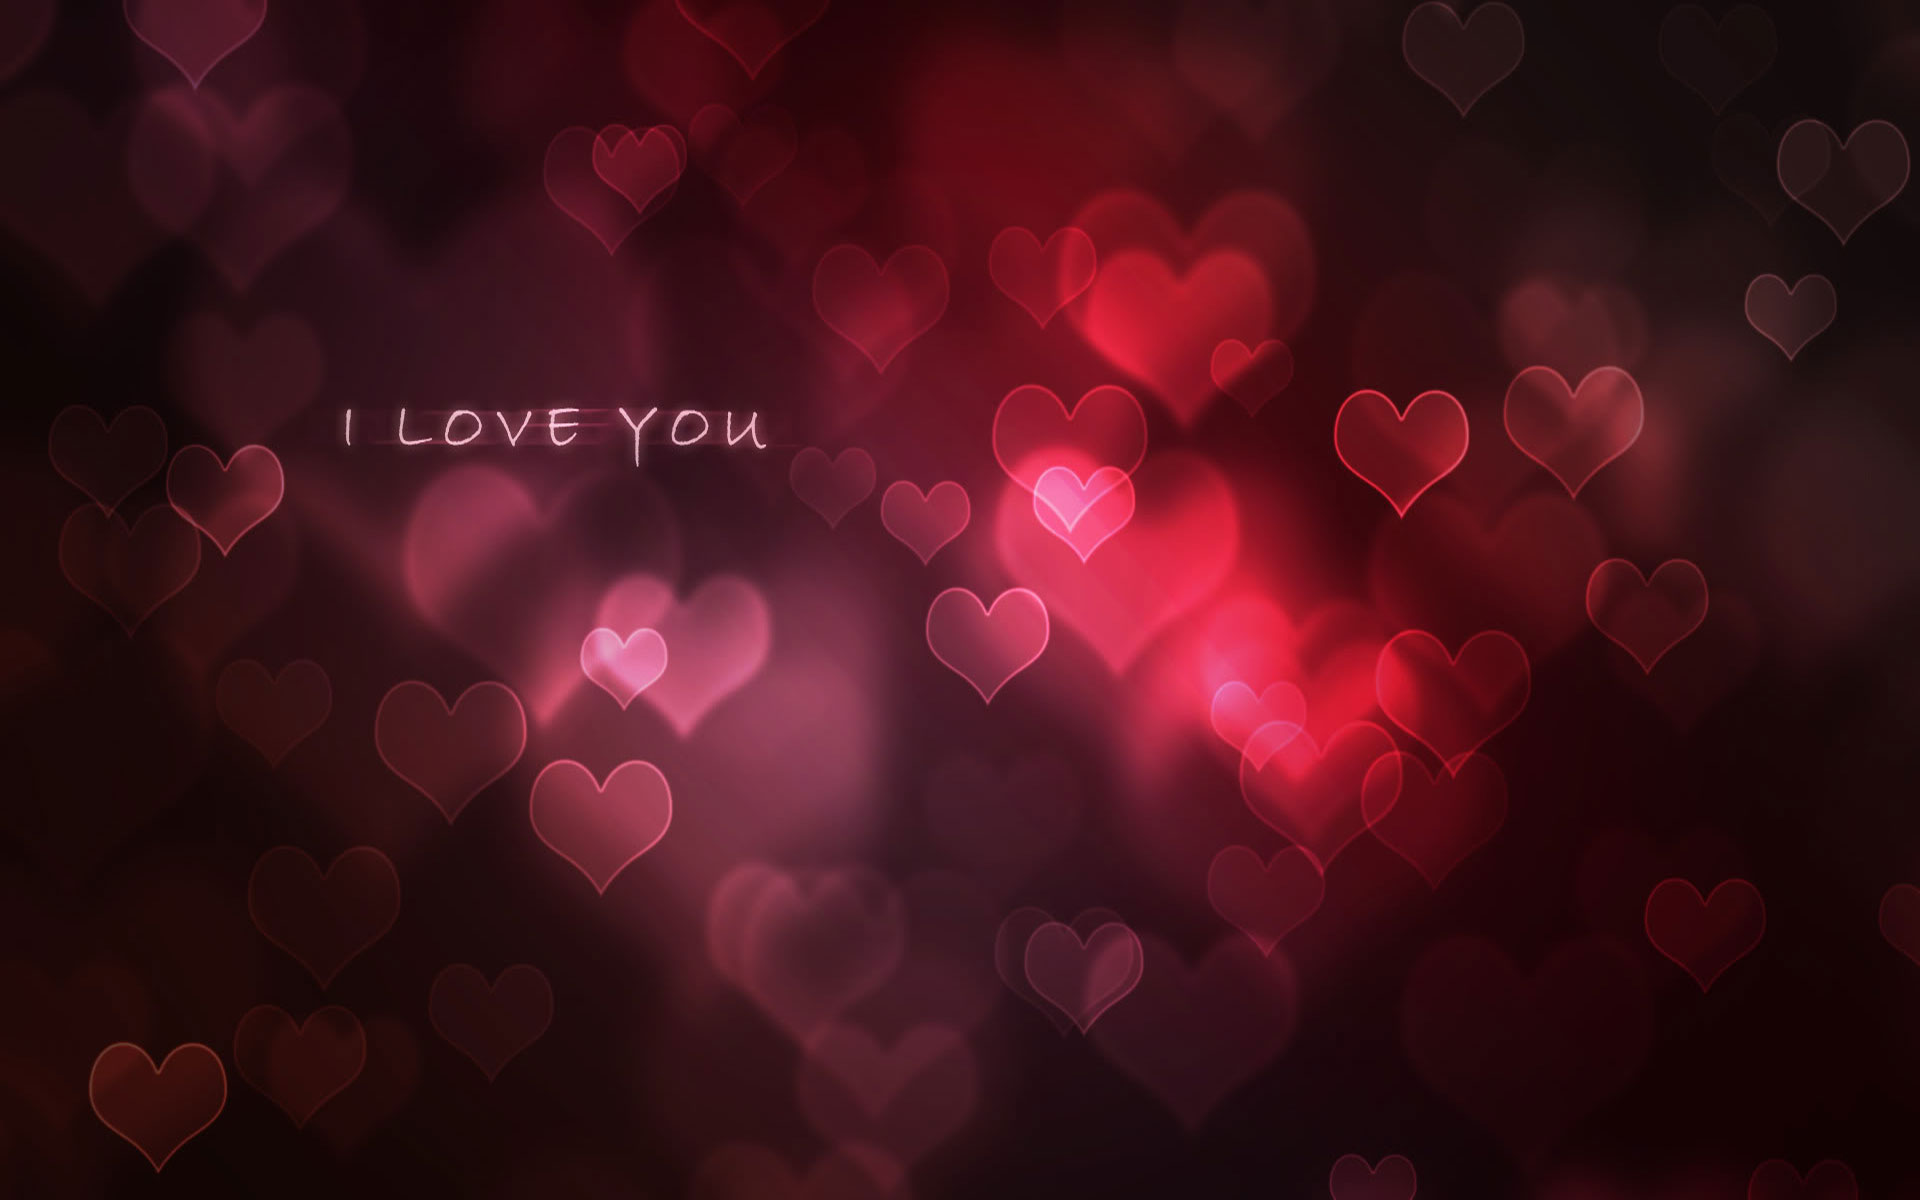 Love Images For Wallpaper : 25+ Free HD I Love You Wallpapers cute I Love You Images